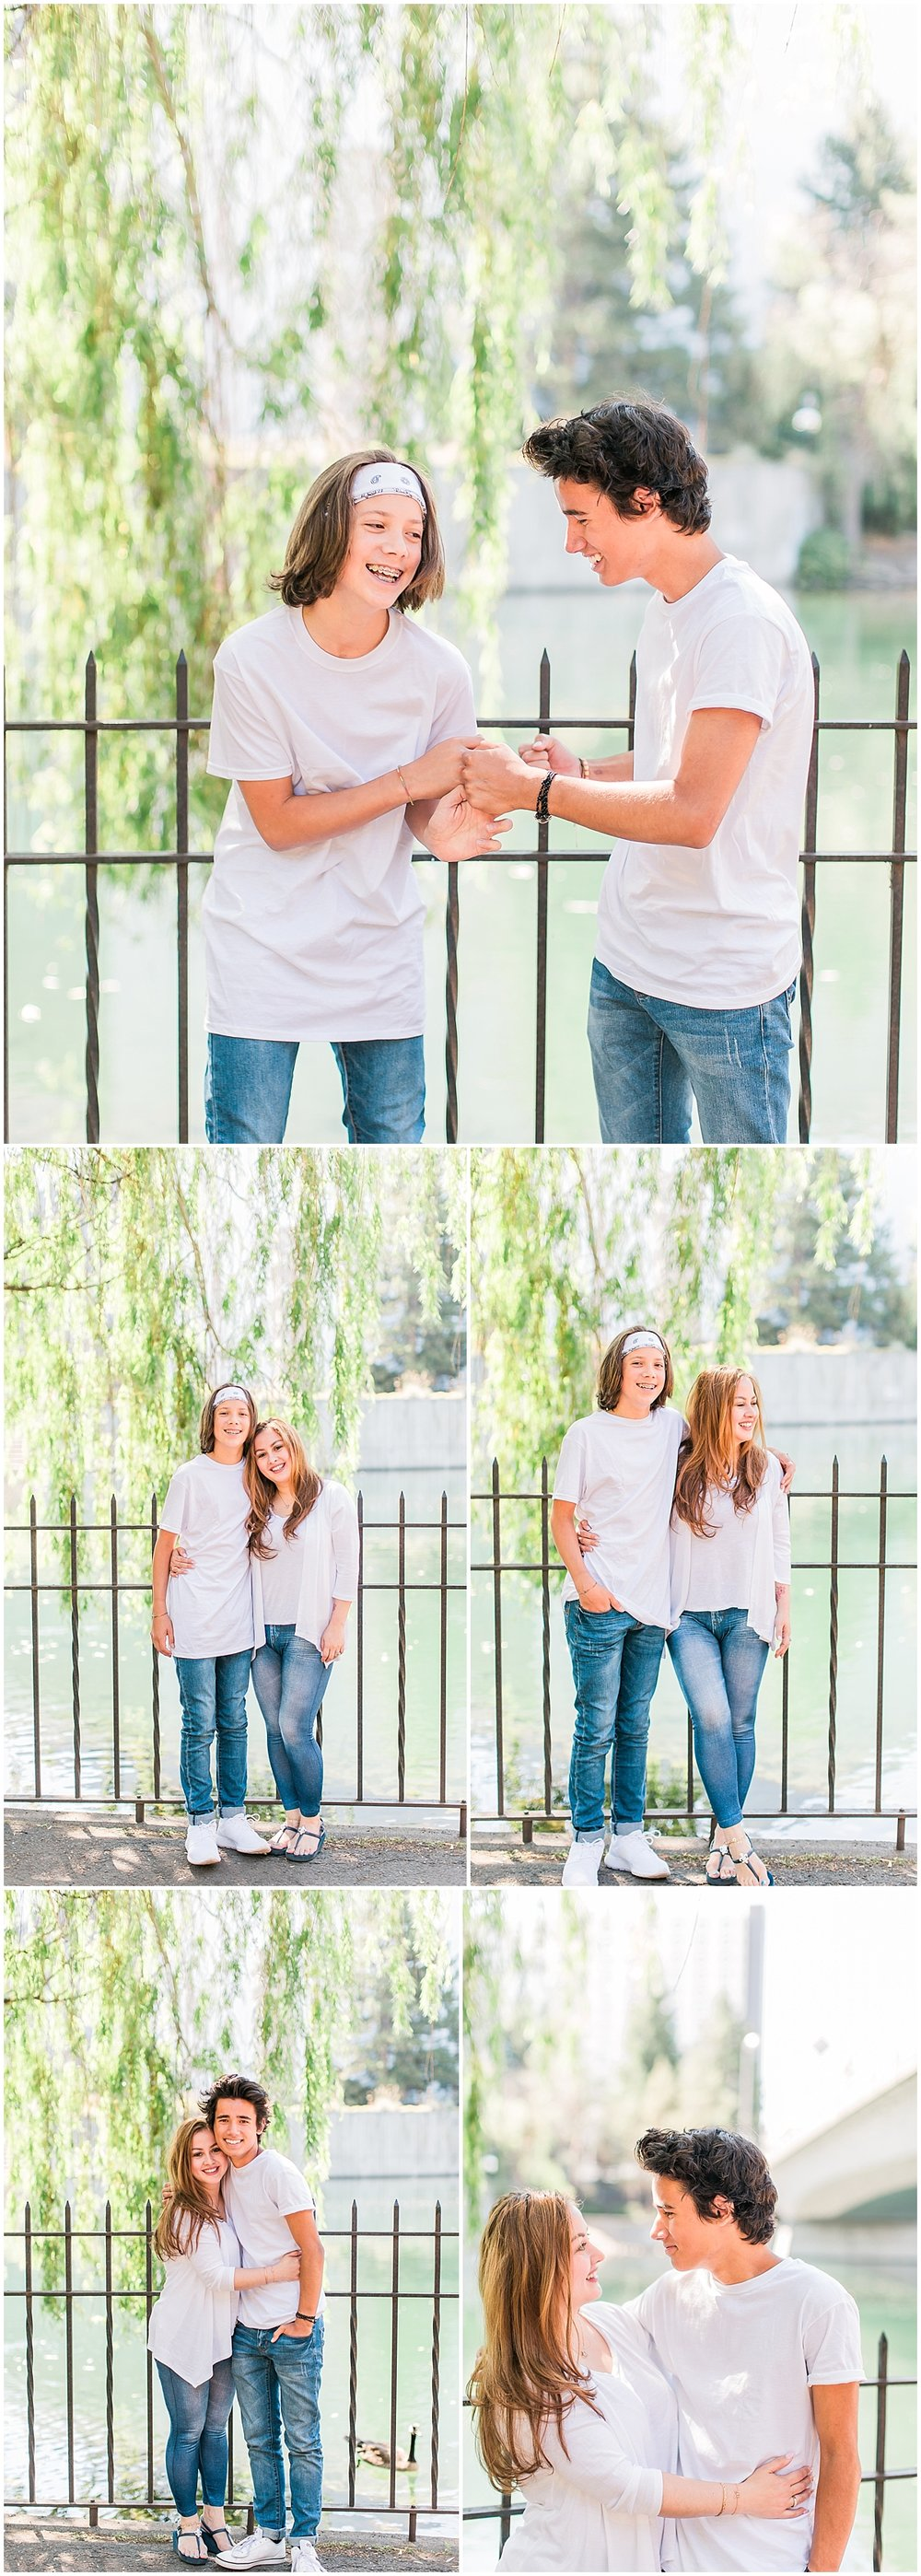 Spokane Family Photographer_0173.jpg